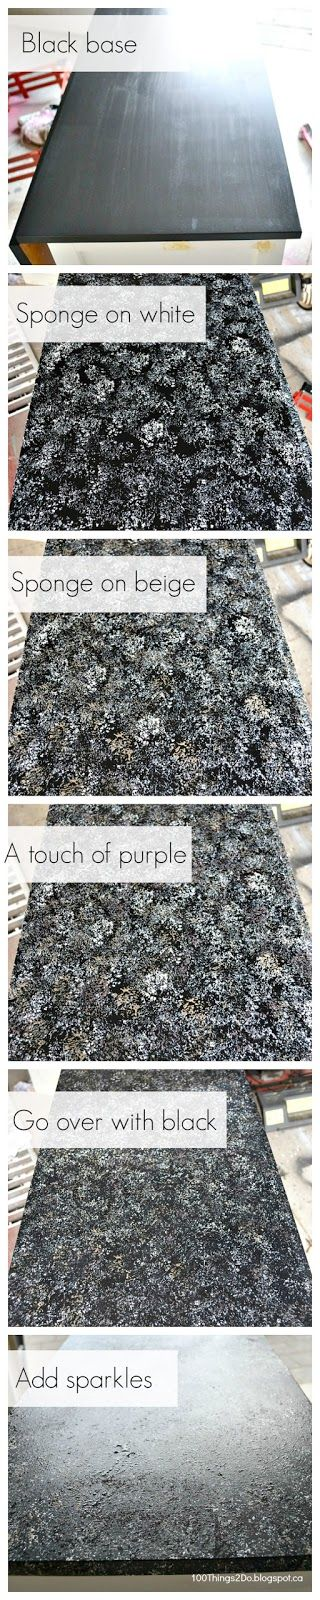 How To Apply Faux Granite Kitchen Countertop Paint Today  25+ best ideas about Faux granite on Pinterest | Faux ...